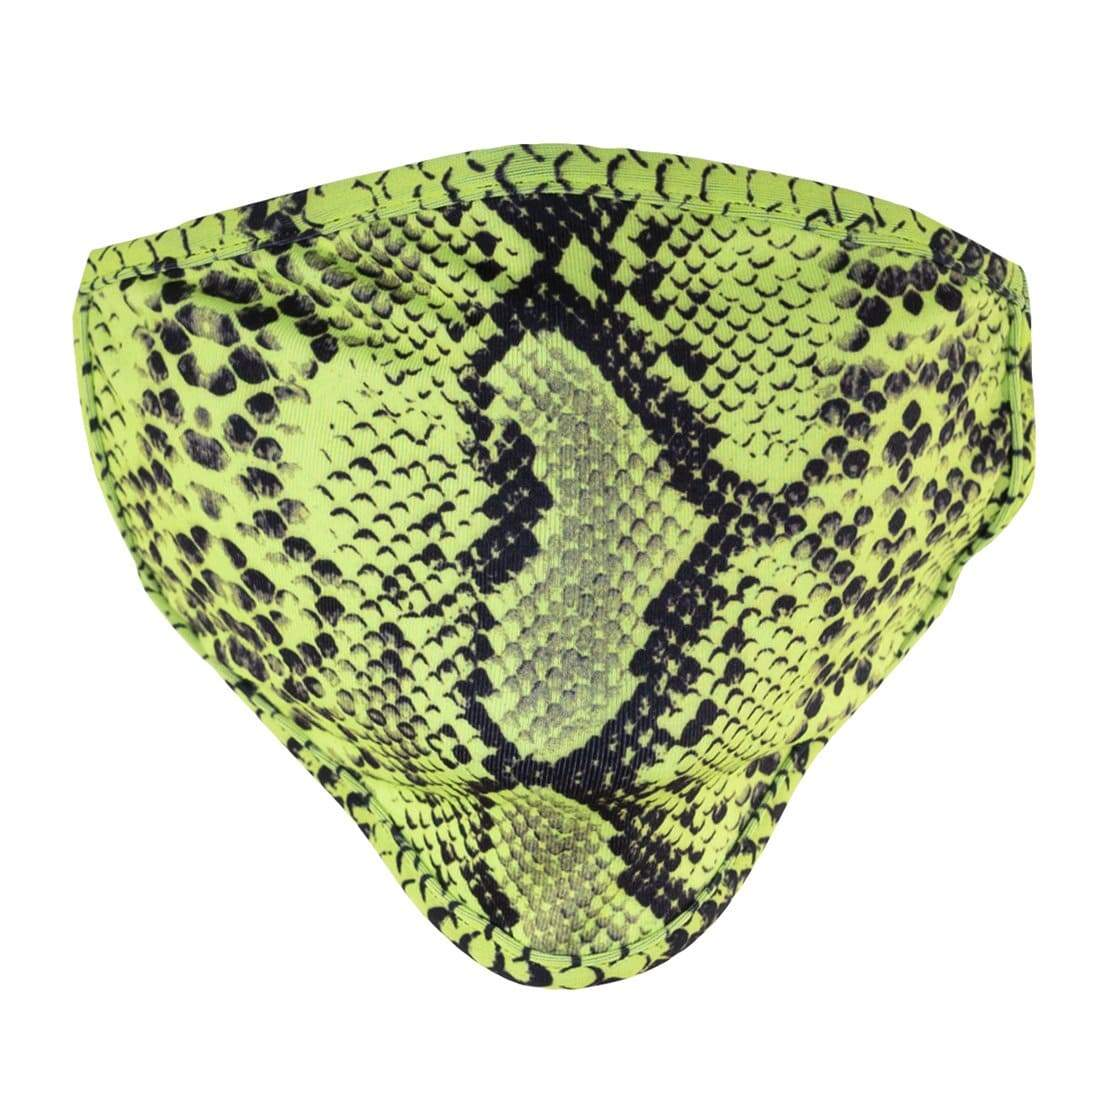 Neon Python Face Mask